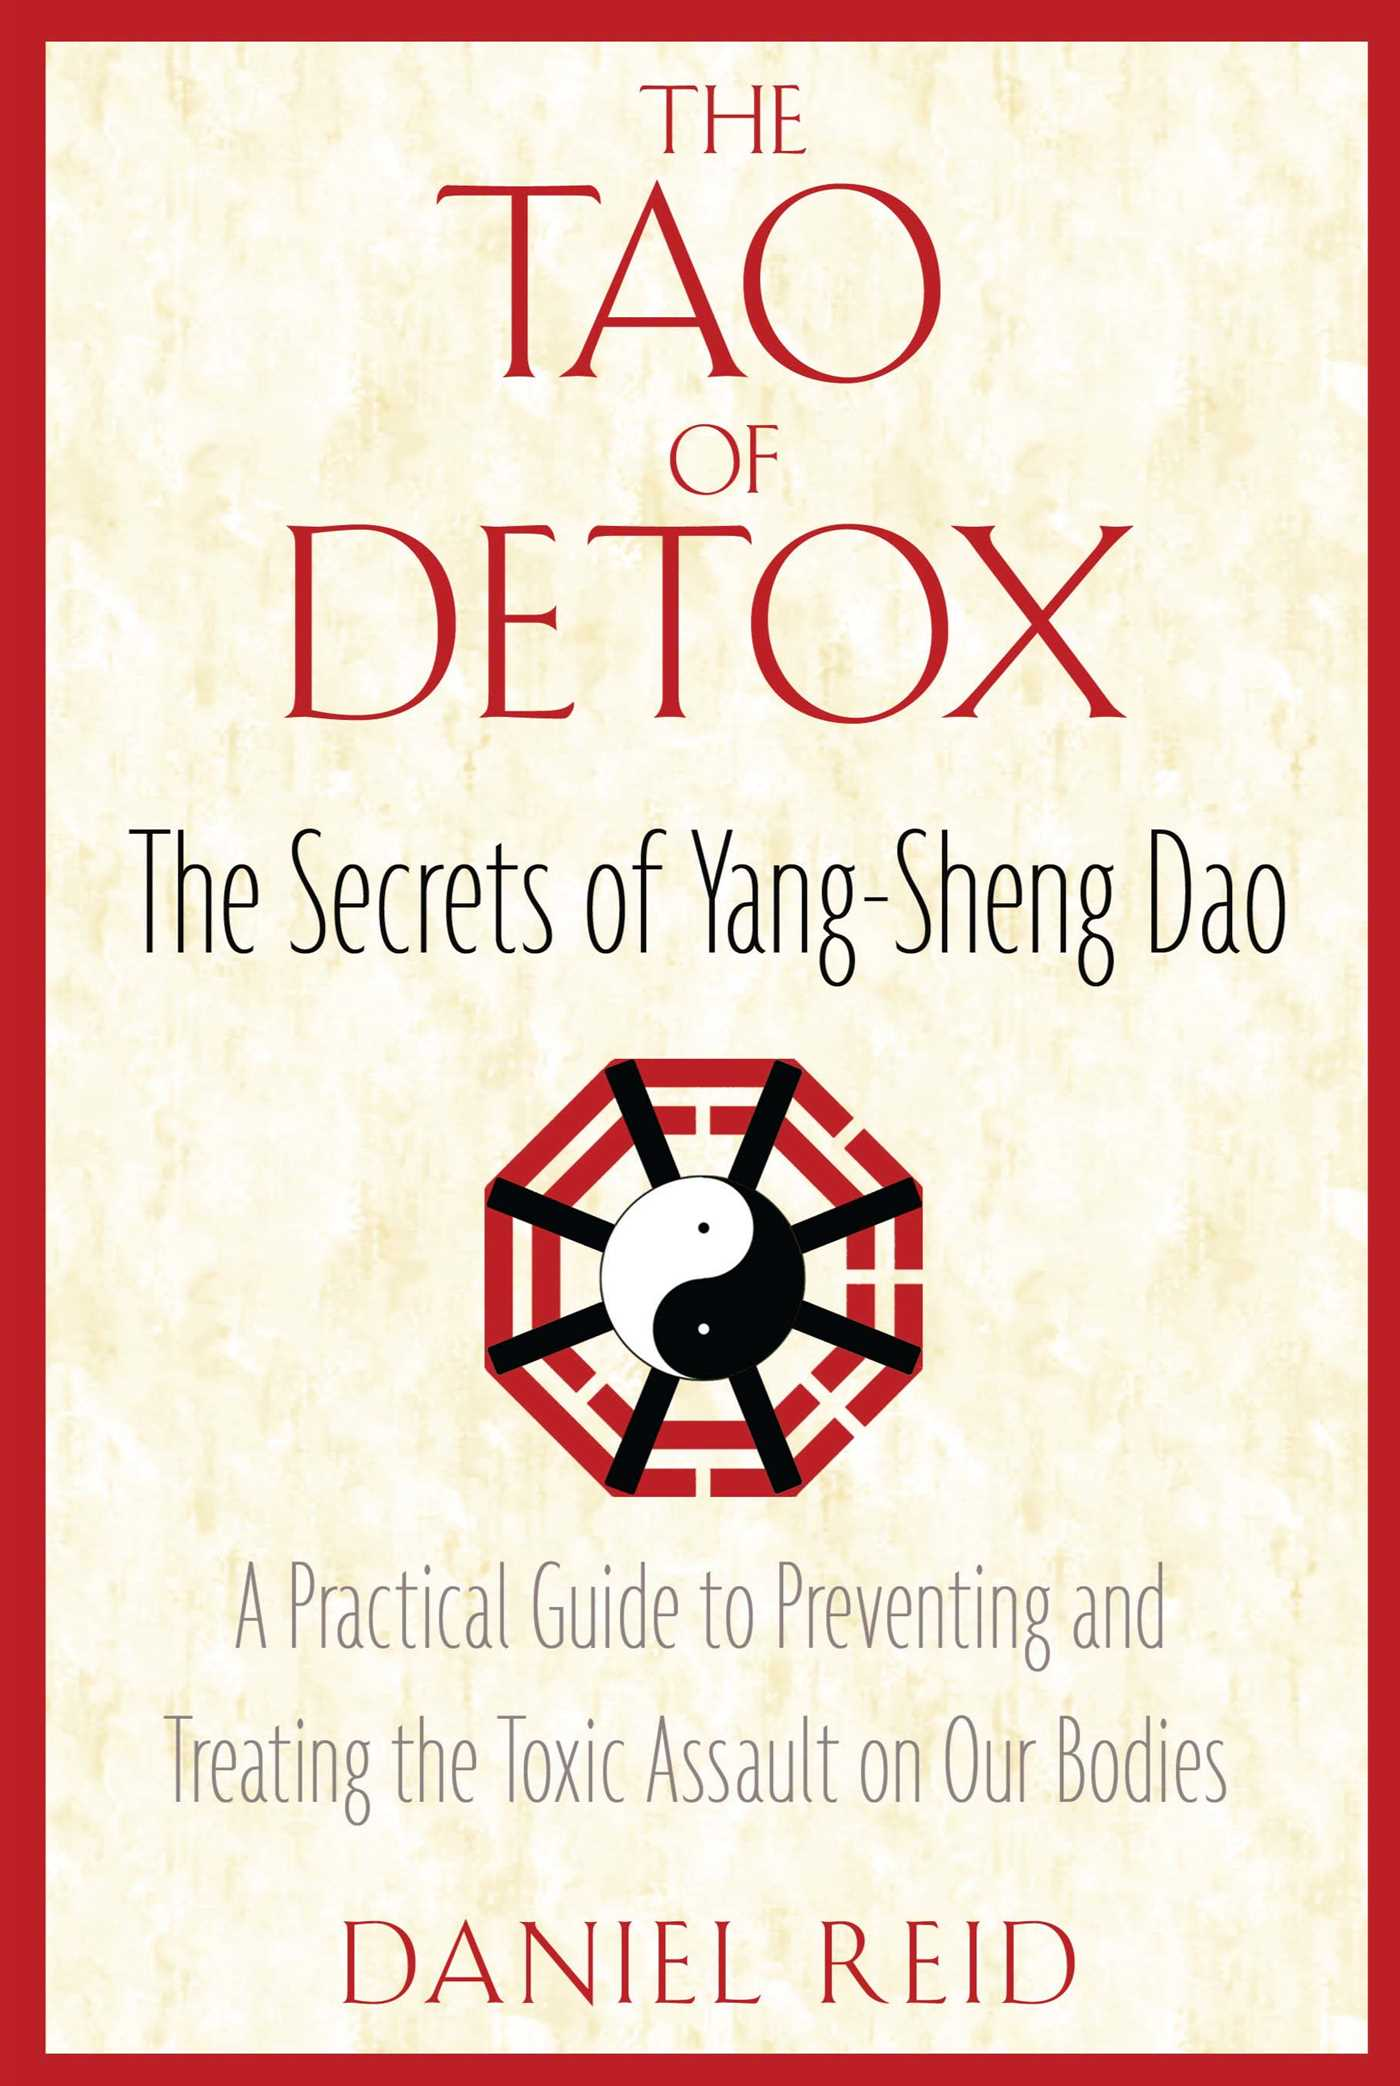 The-tao-of-detox-9781594771422_hr